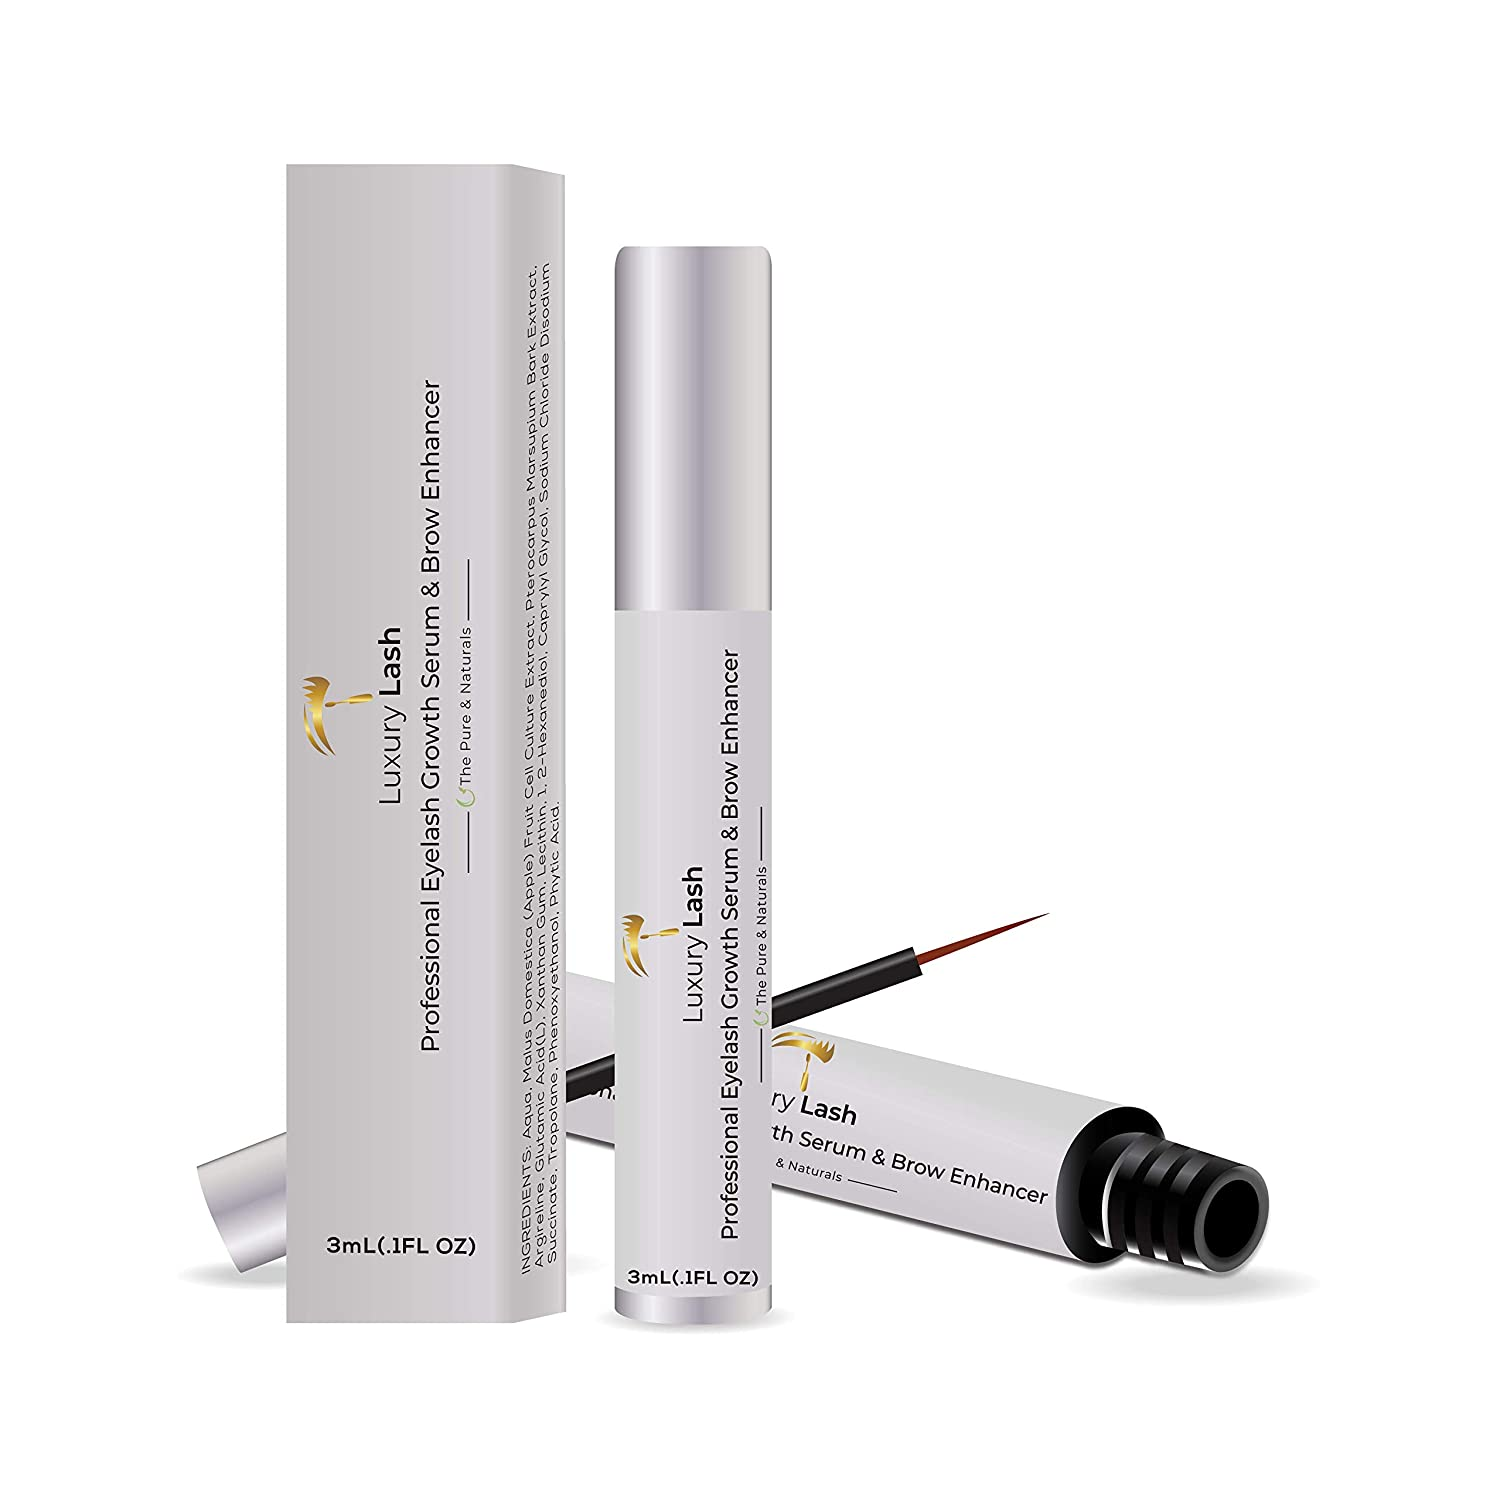 Luxury Lash and Brow - Eyelash Growth Serum and Enhancer Irritation Free Formula 3ml